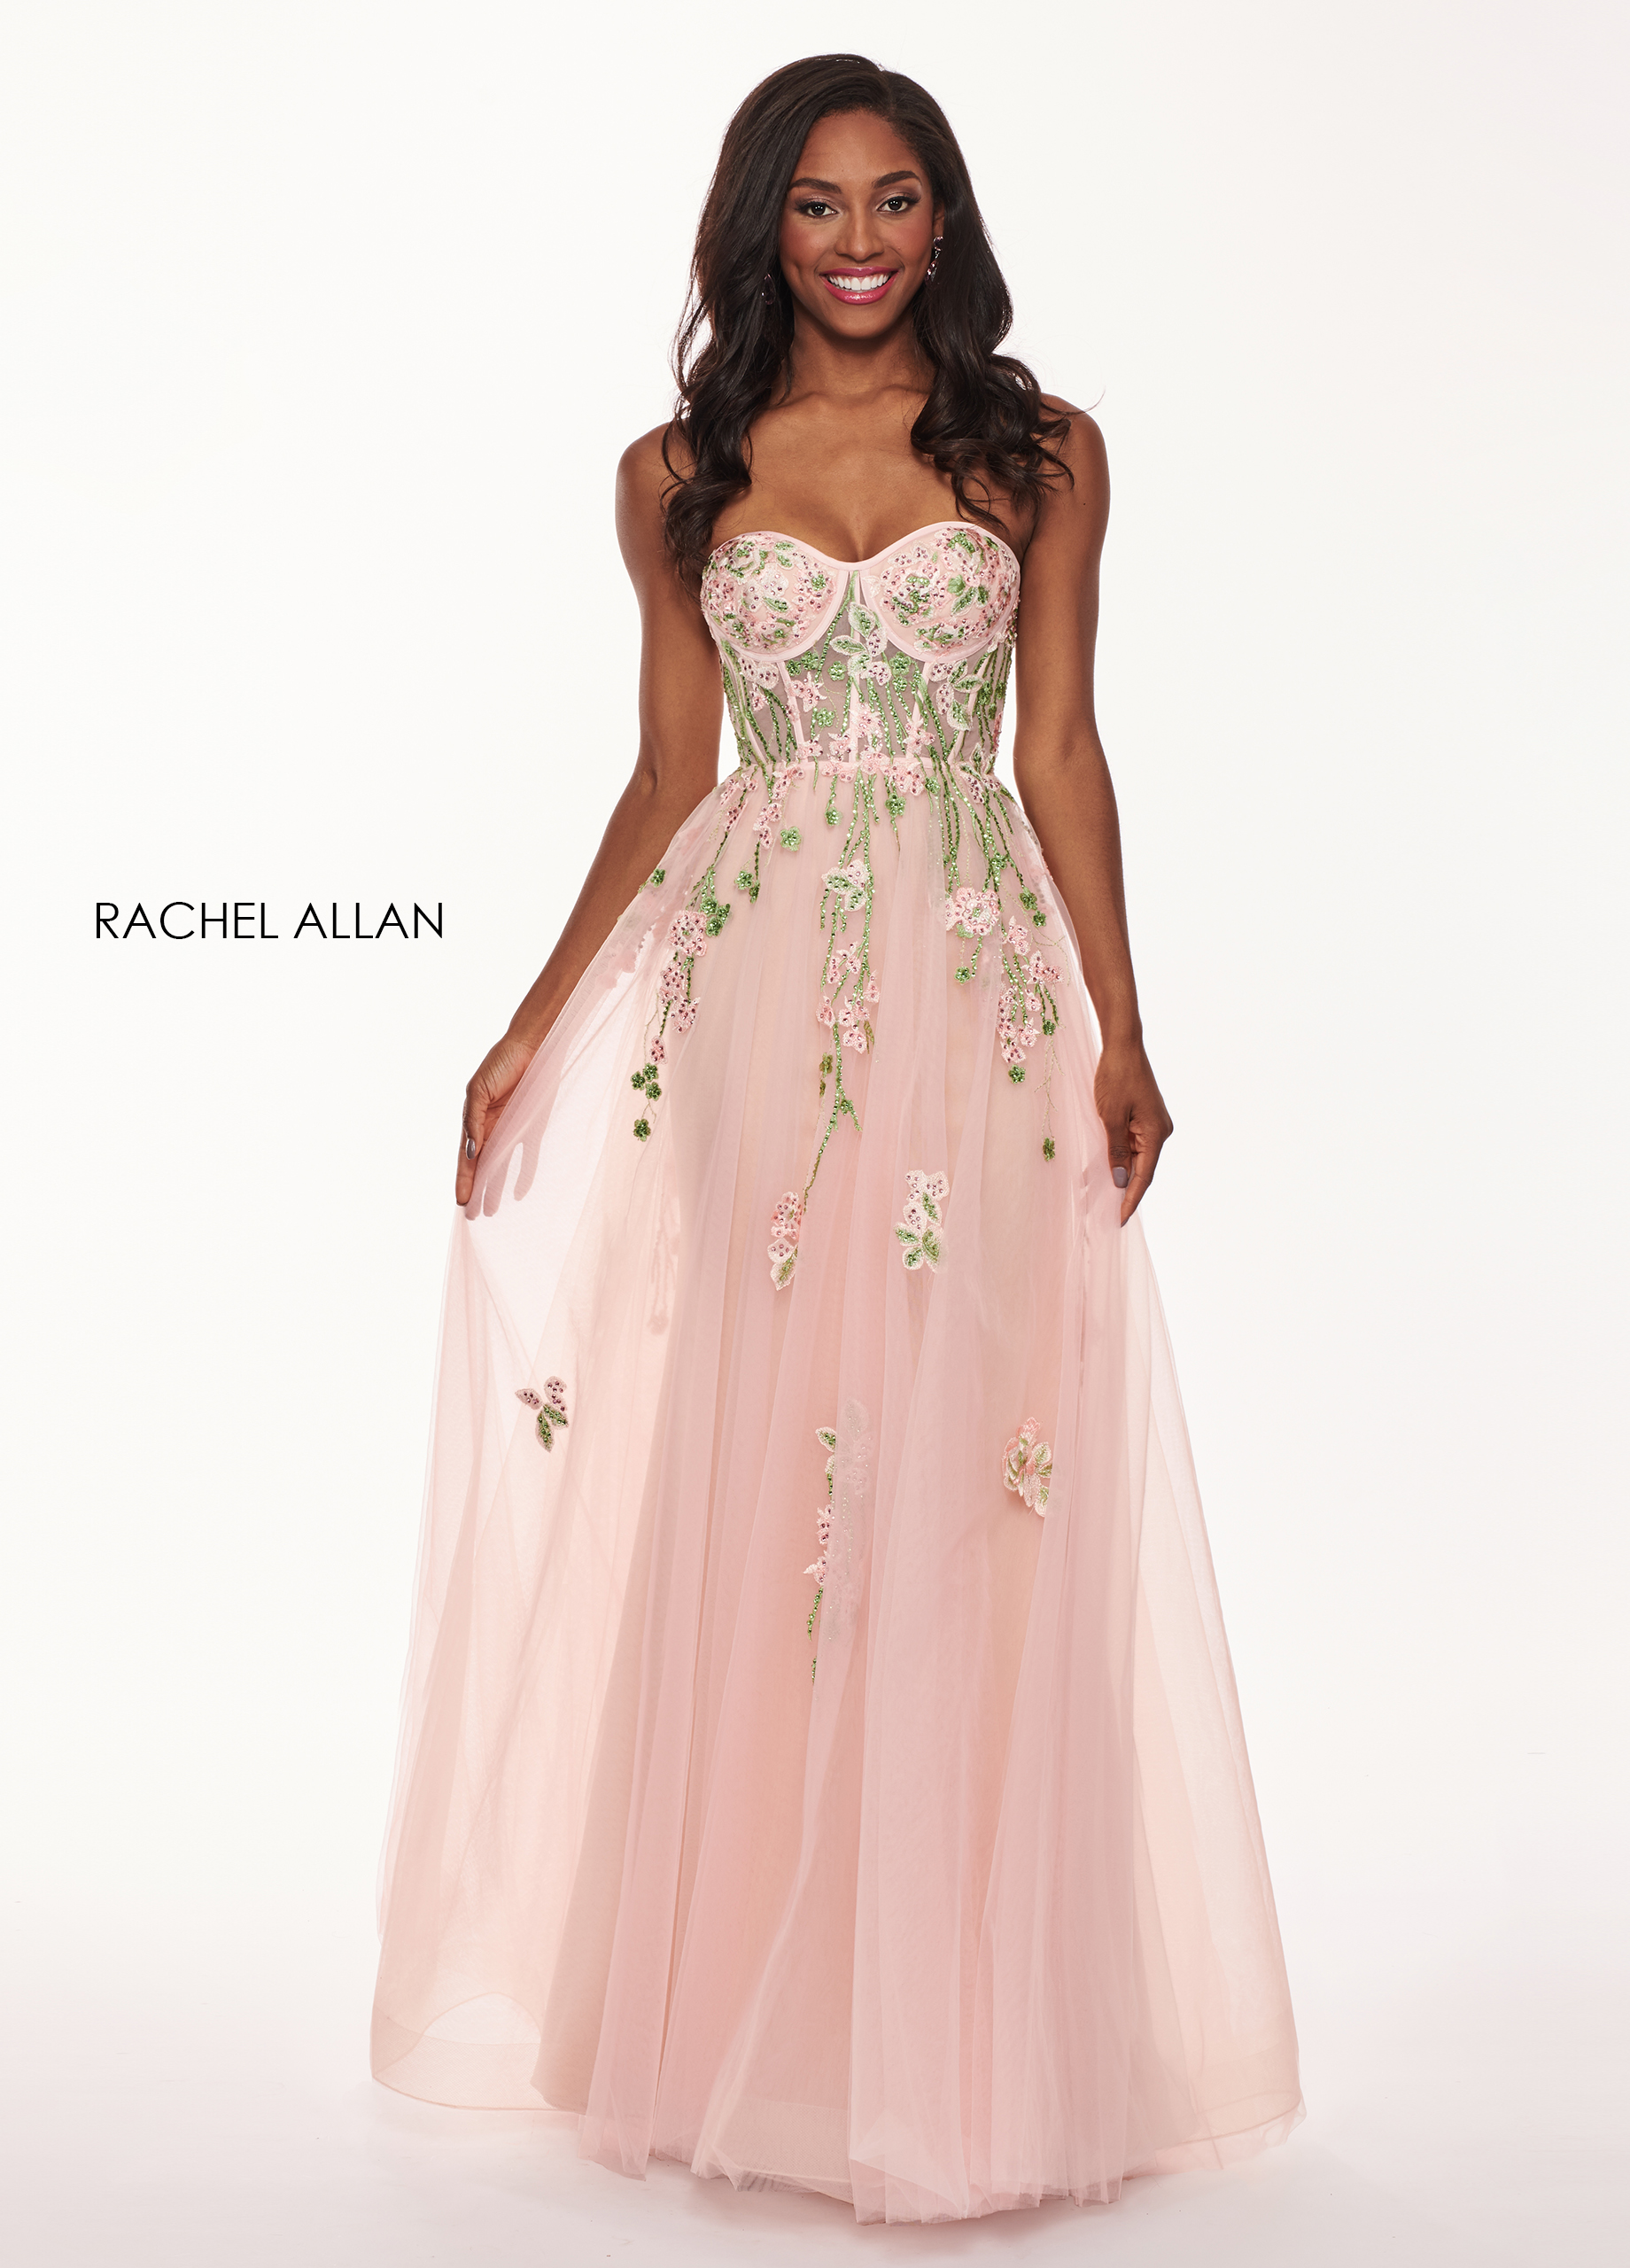 Sweetheart A-Line Prom Dresses in Blush Color